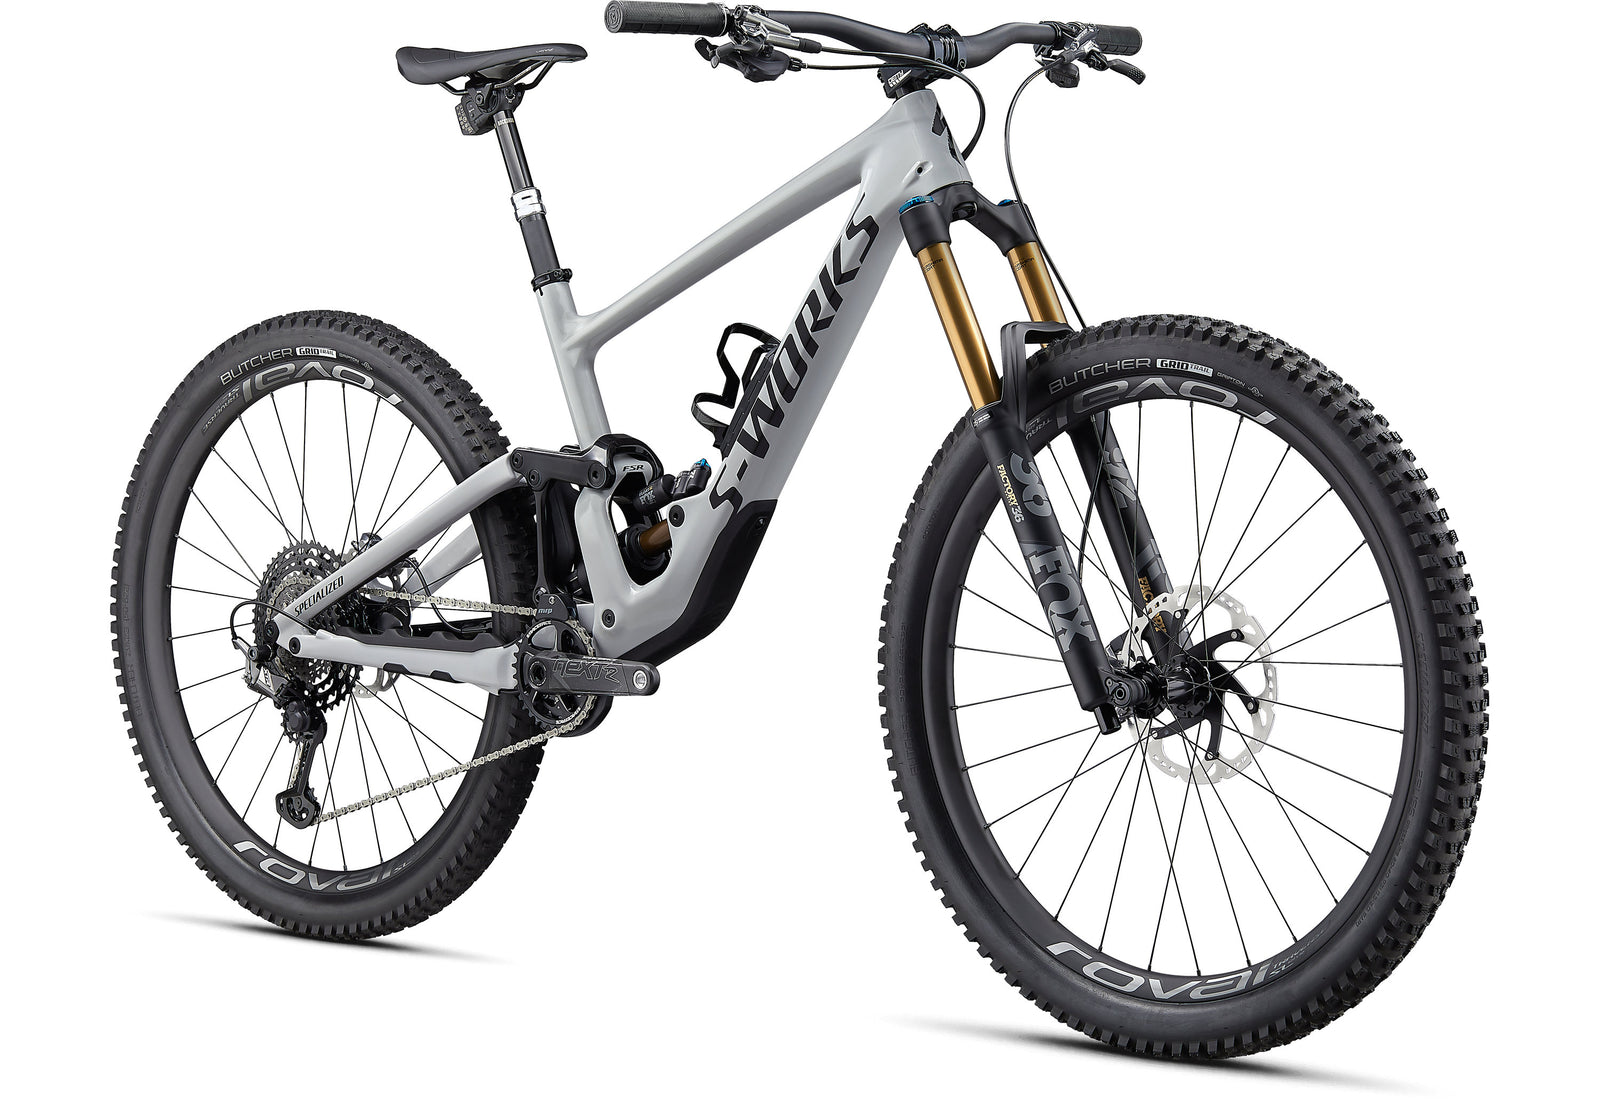 All-New S-Works Enduro